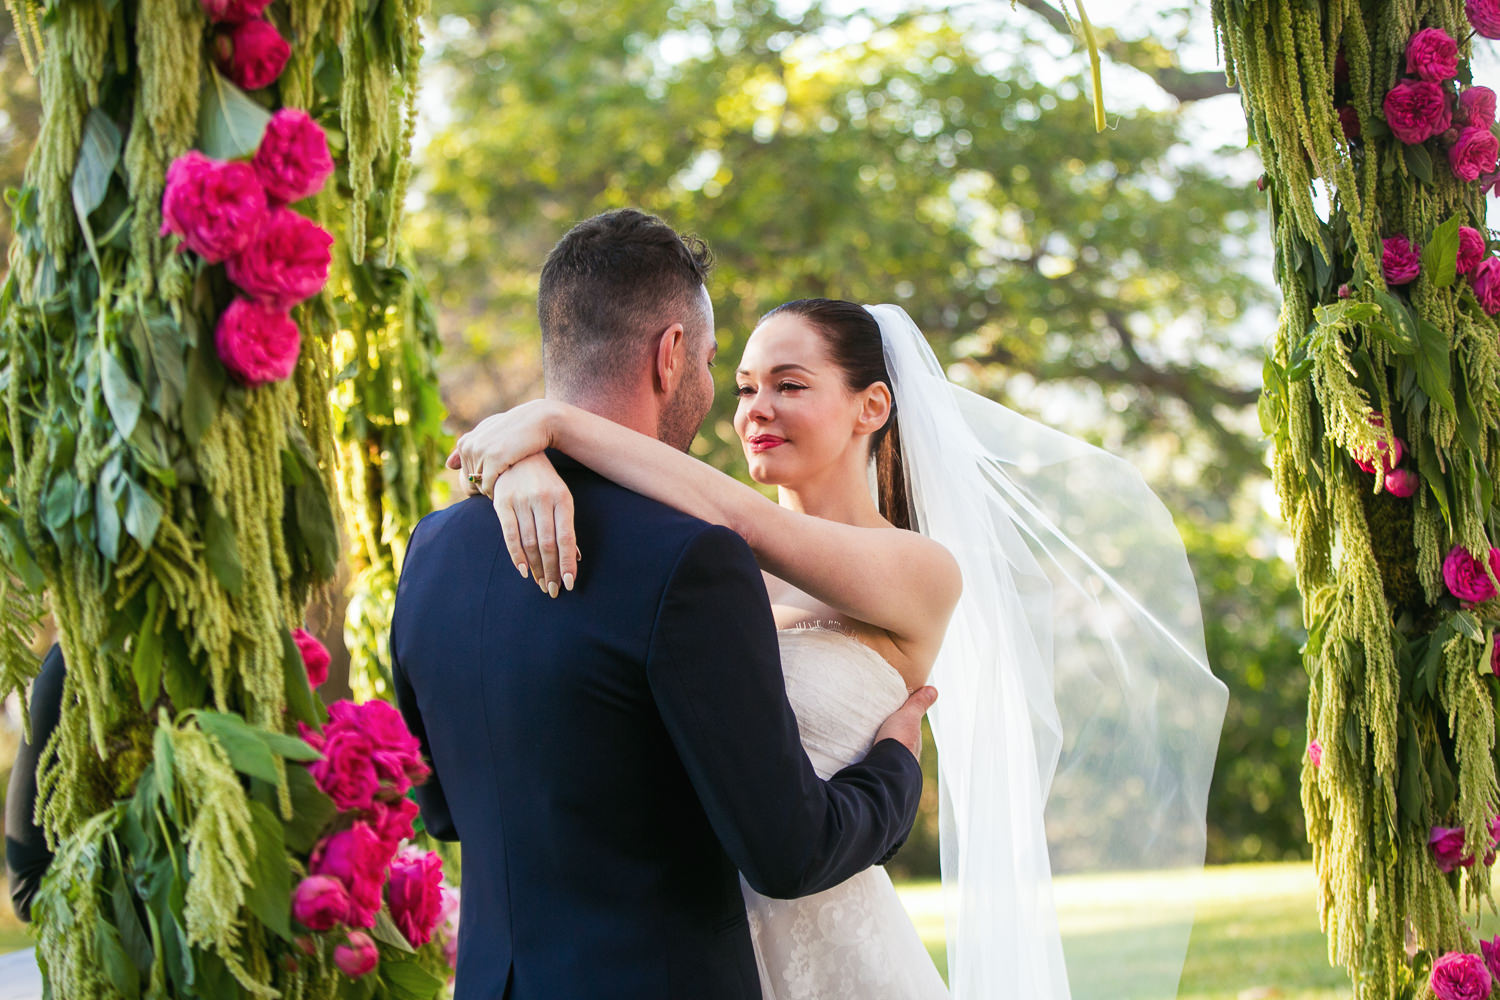 Rose McGowan Wedding at Paramour Estate - Bride and groom embracing